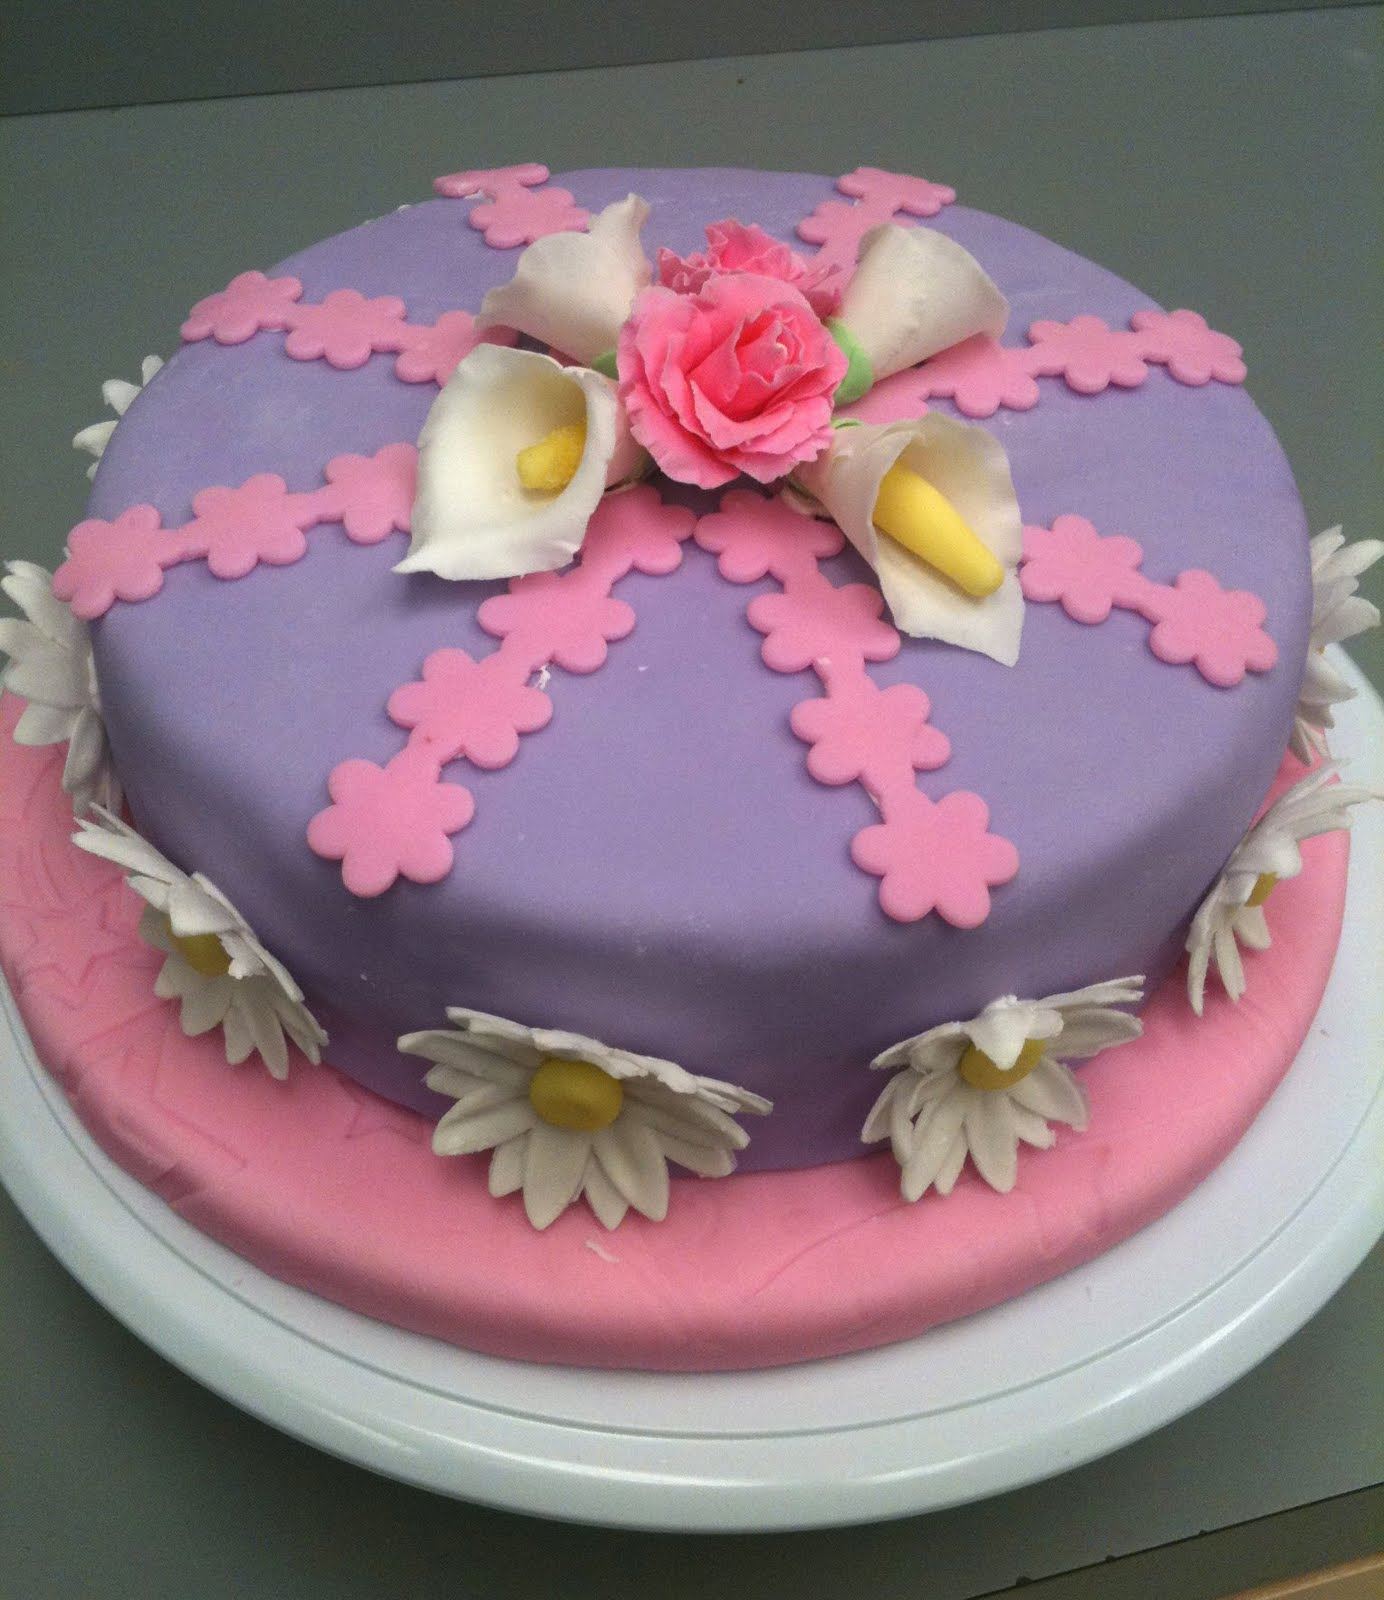 Fondant Cake Decorating Classes Michaels : Cake Decorating by Sonia: July 2011 - Course 3 - Gum Paste ...